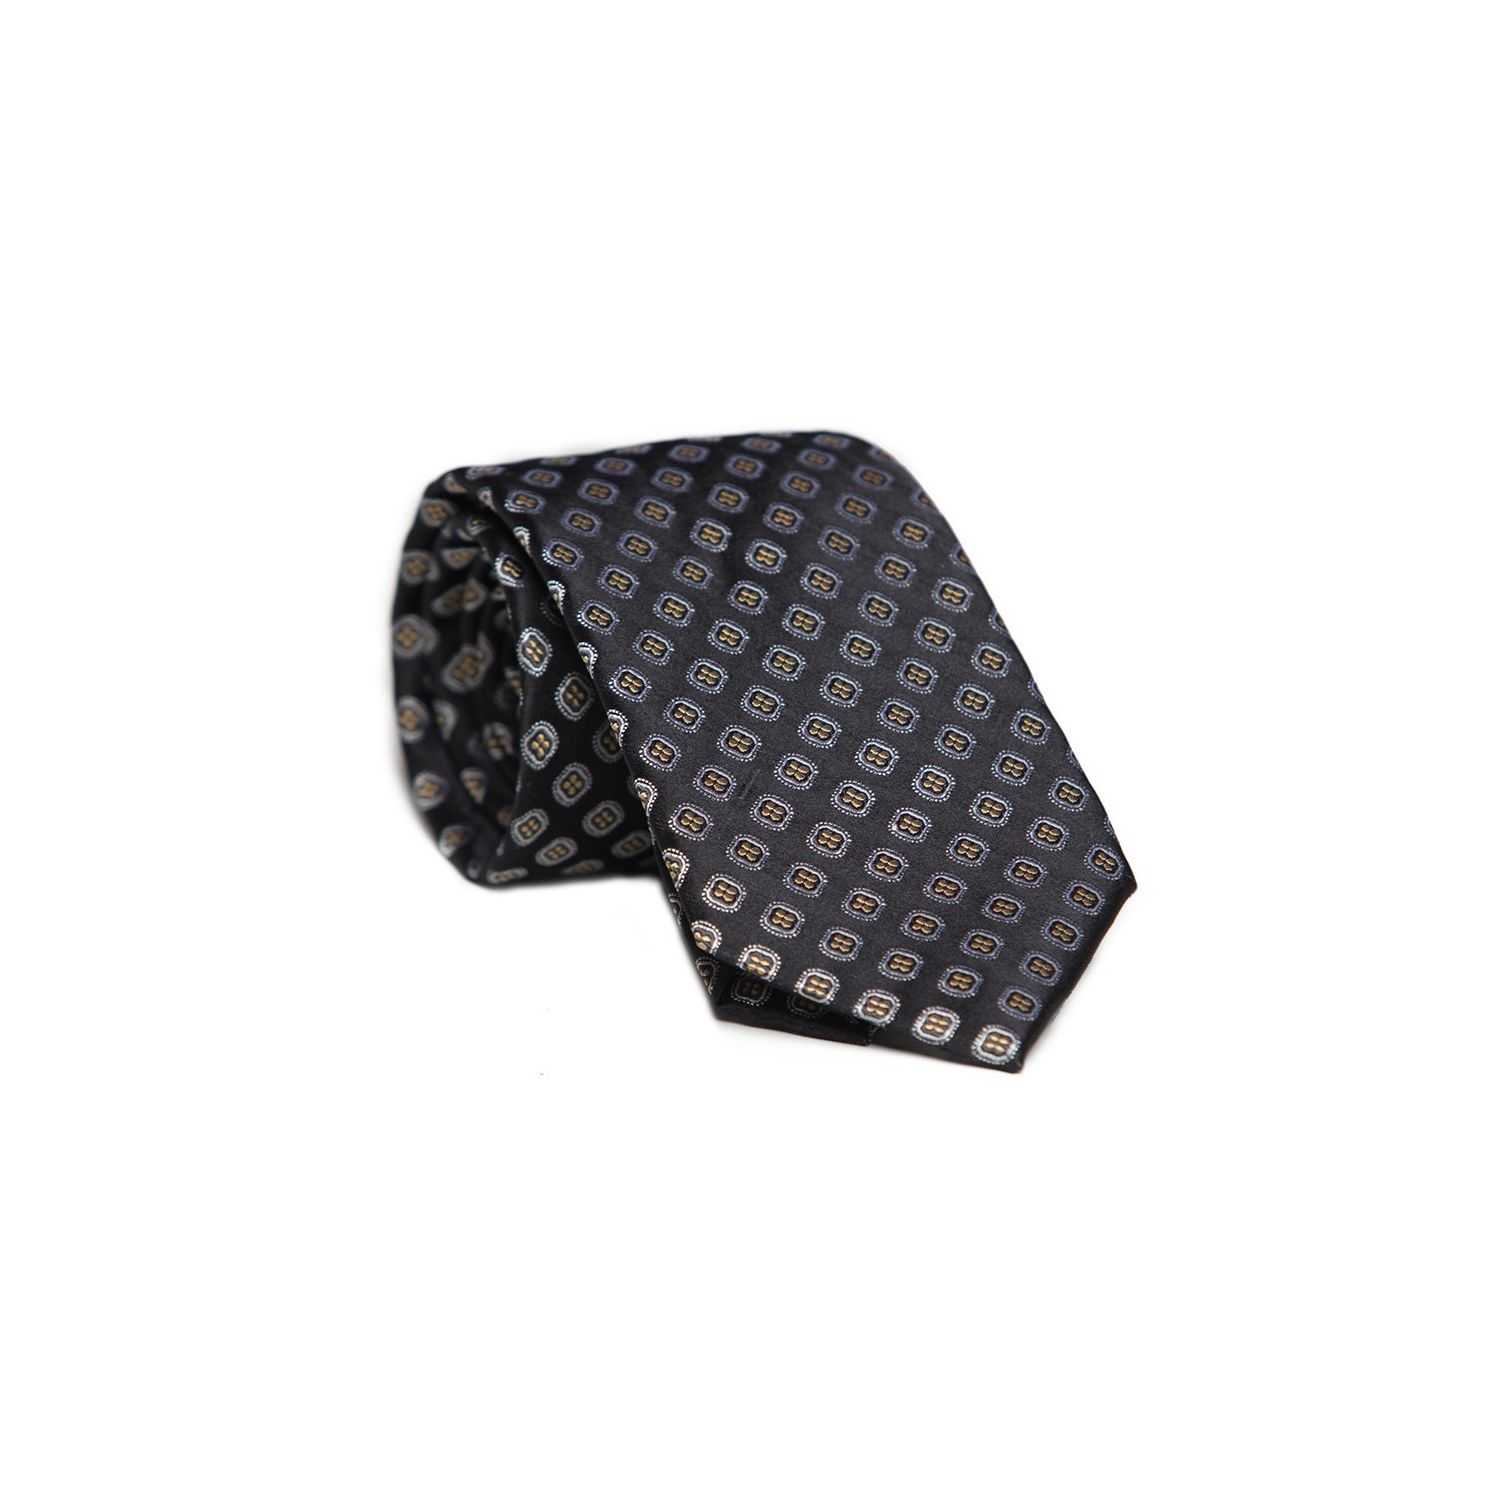 L. Biagiotti round tie black pattern Celebration